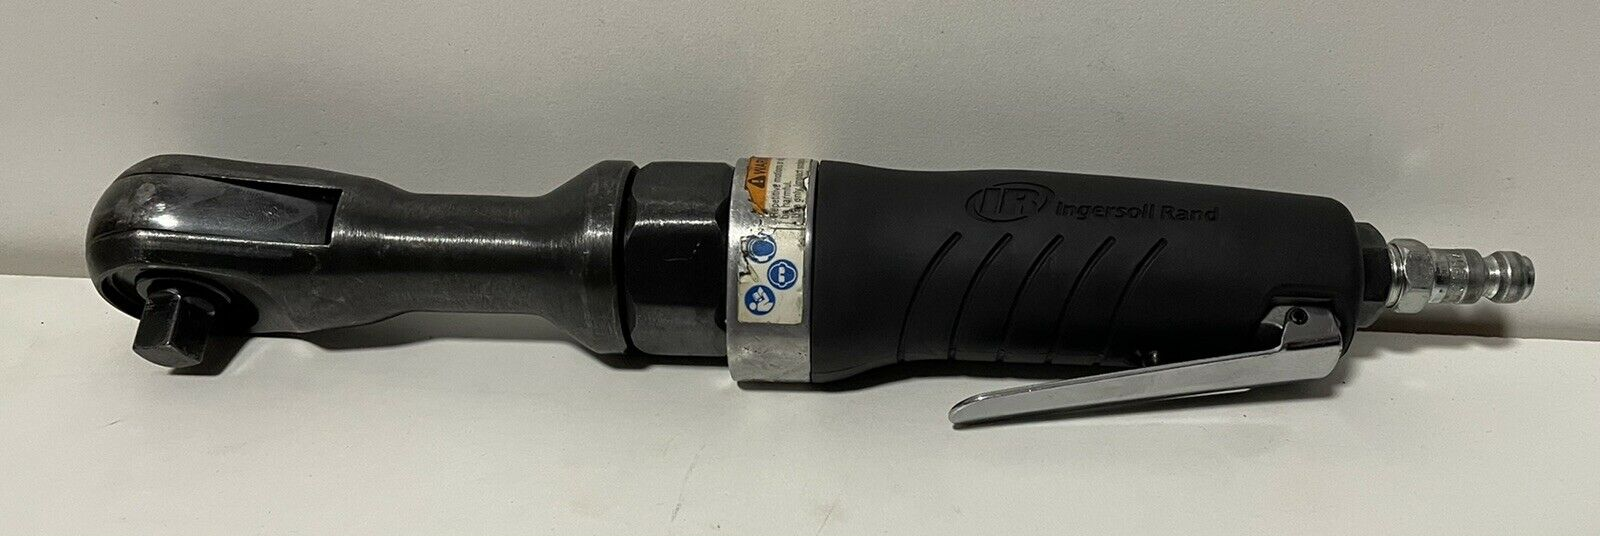 Used Ingersoll Rand Air Ratchet Wrench 3/8